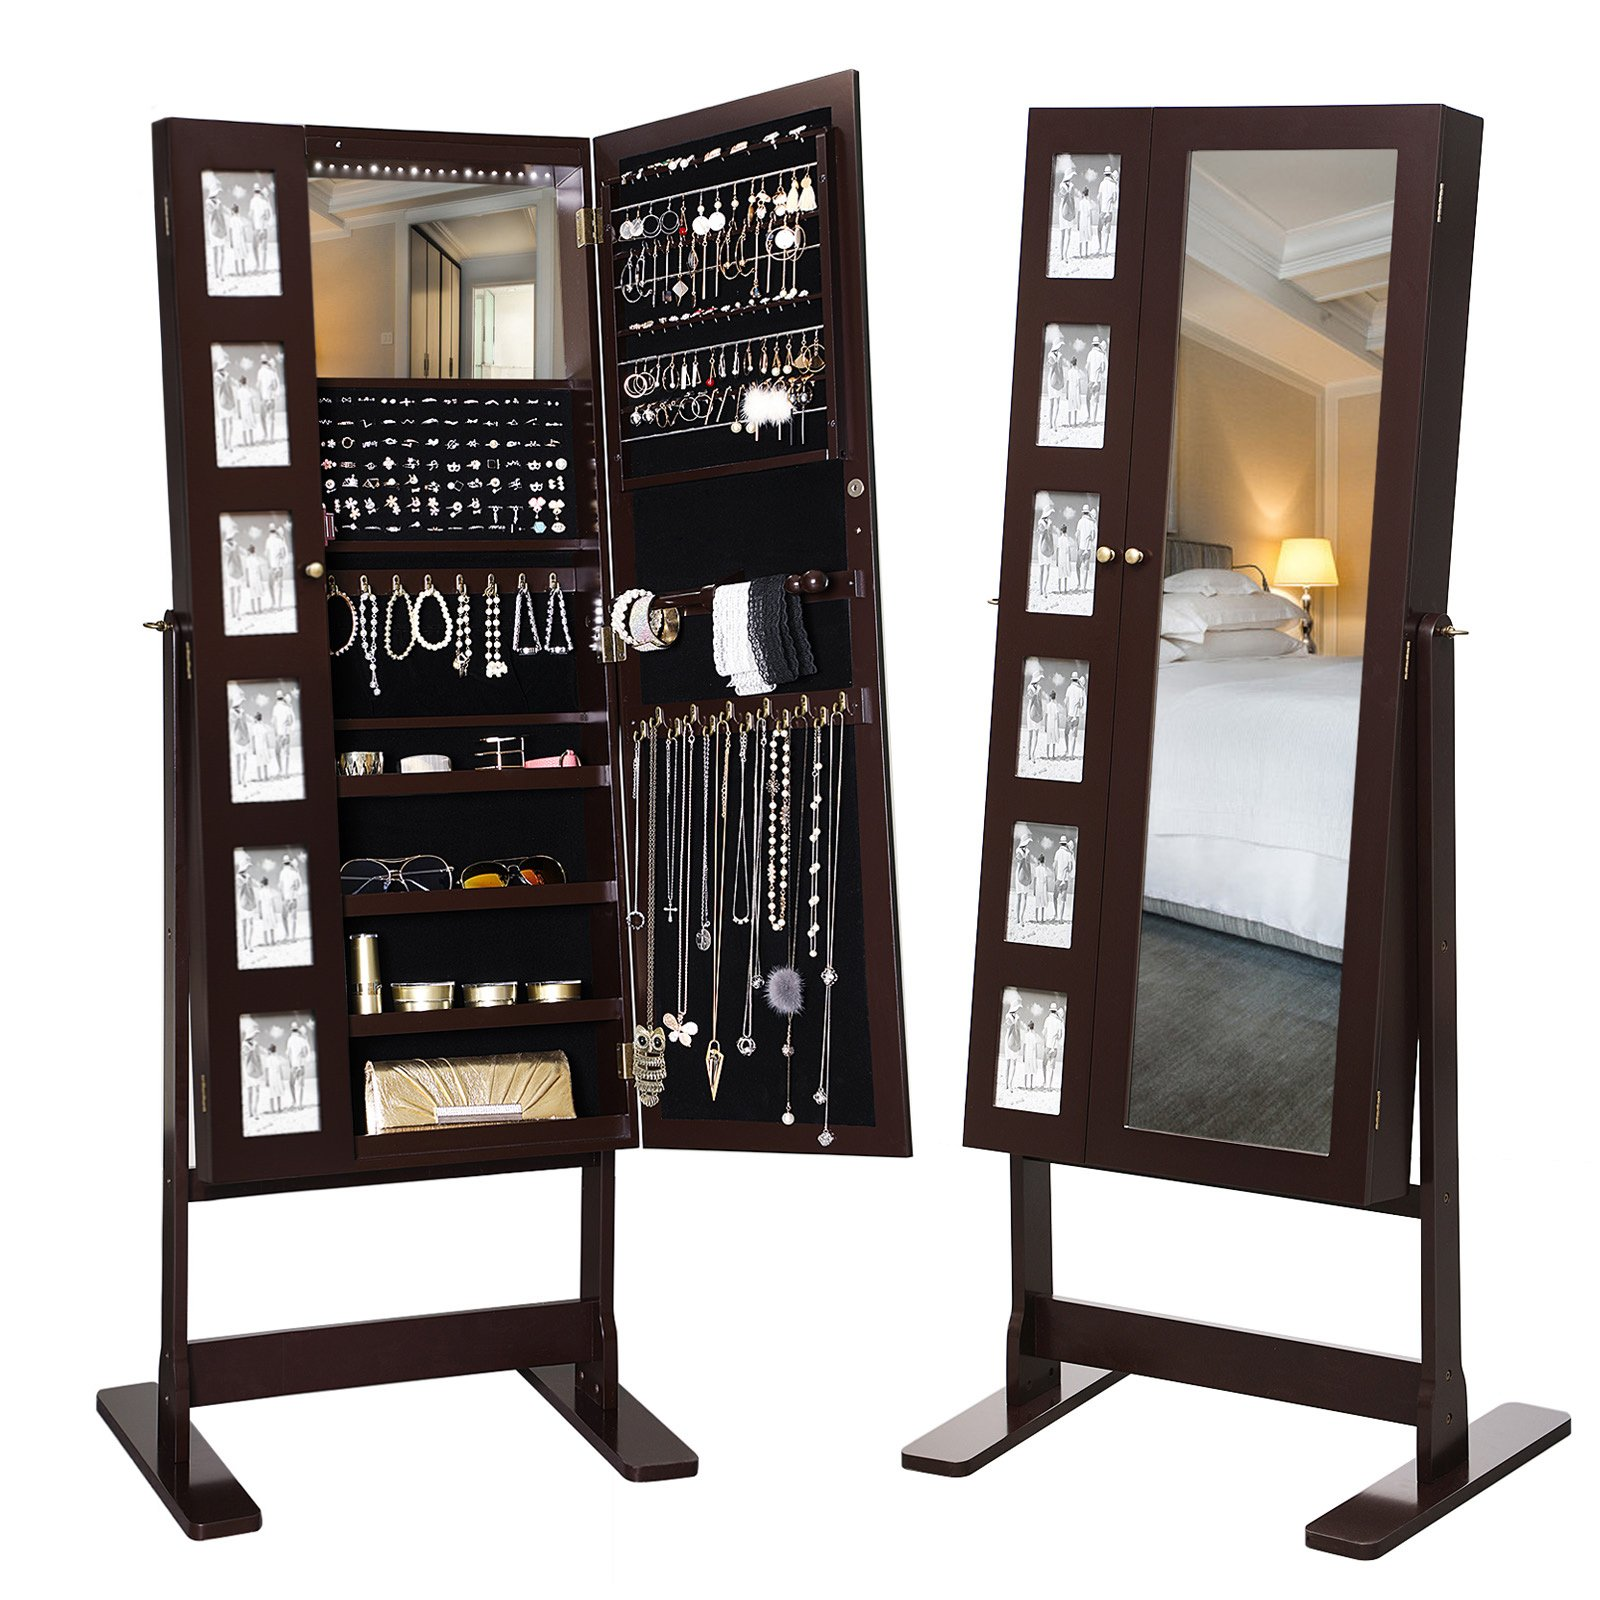 SONGMICS 18 LEDs Jewelry Cabinet Mirrored Standing Jewelry Armoire Organizer with 6 Photo Frames Brown UJJC92K